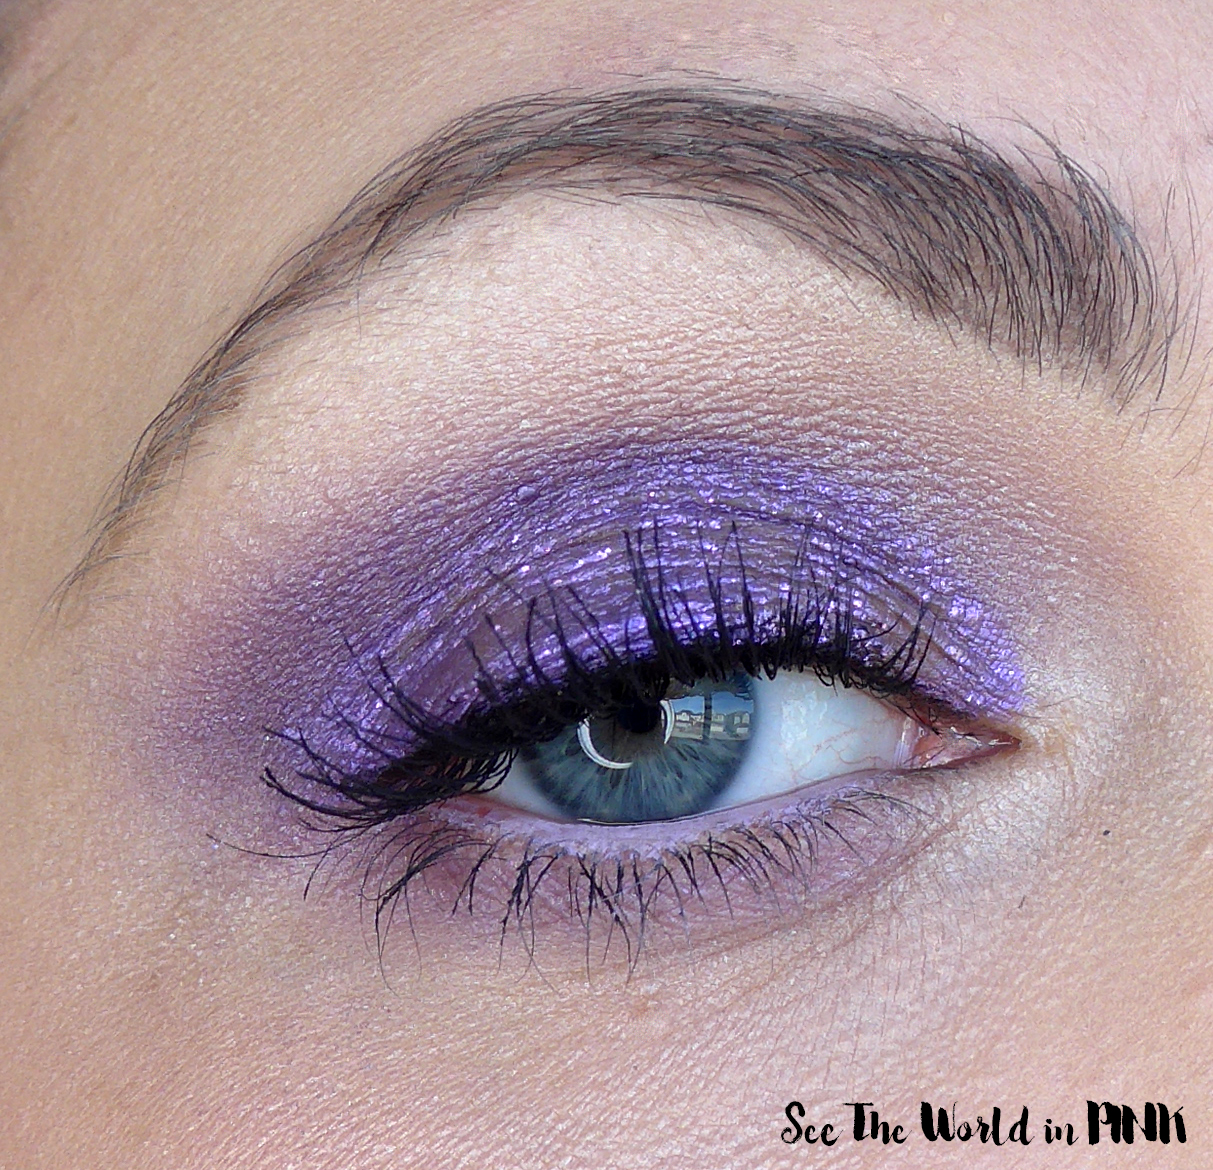 Hard Candy Glitteratzi - Glitter & Chrome Eyeshadow Duo in Viva La Venus